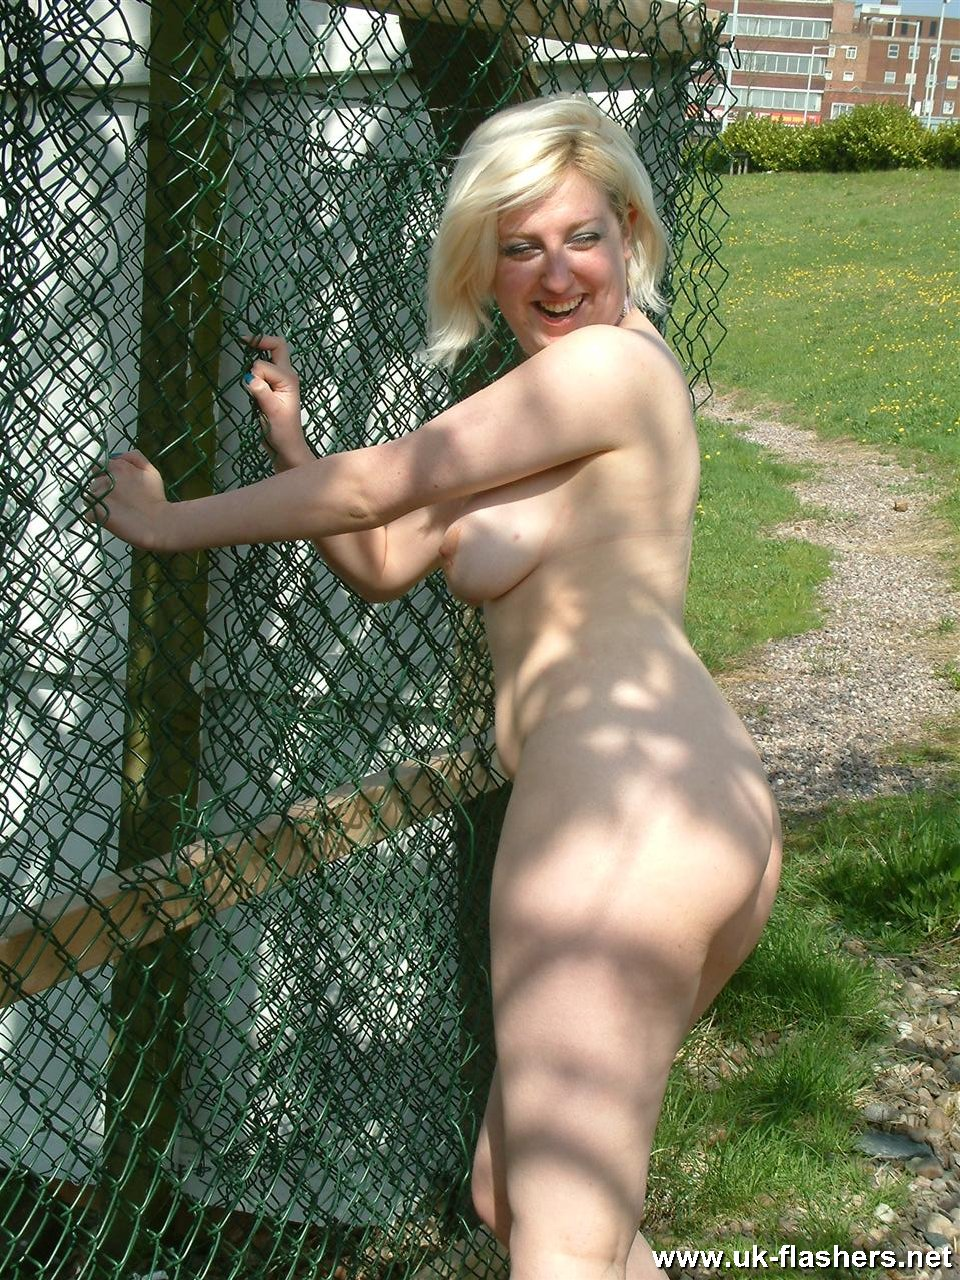 outdoors | uk amateur xxx outdoors | private amateur babes nude